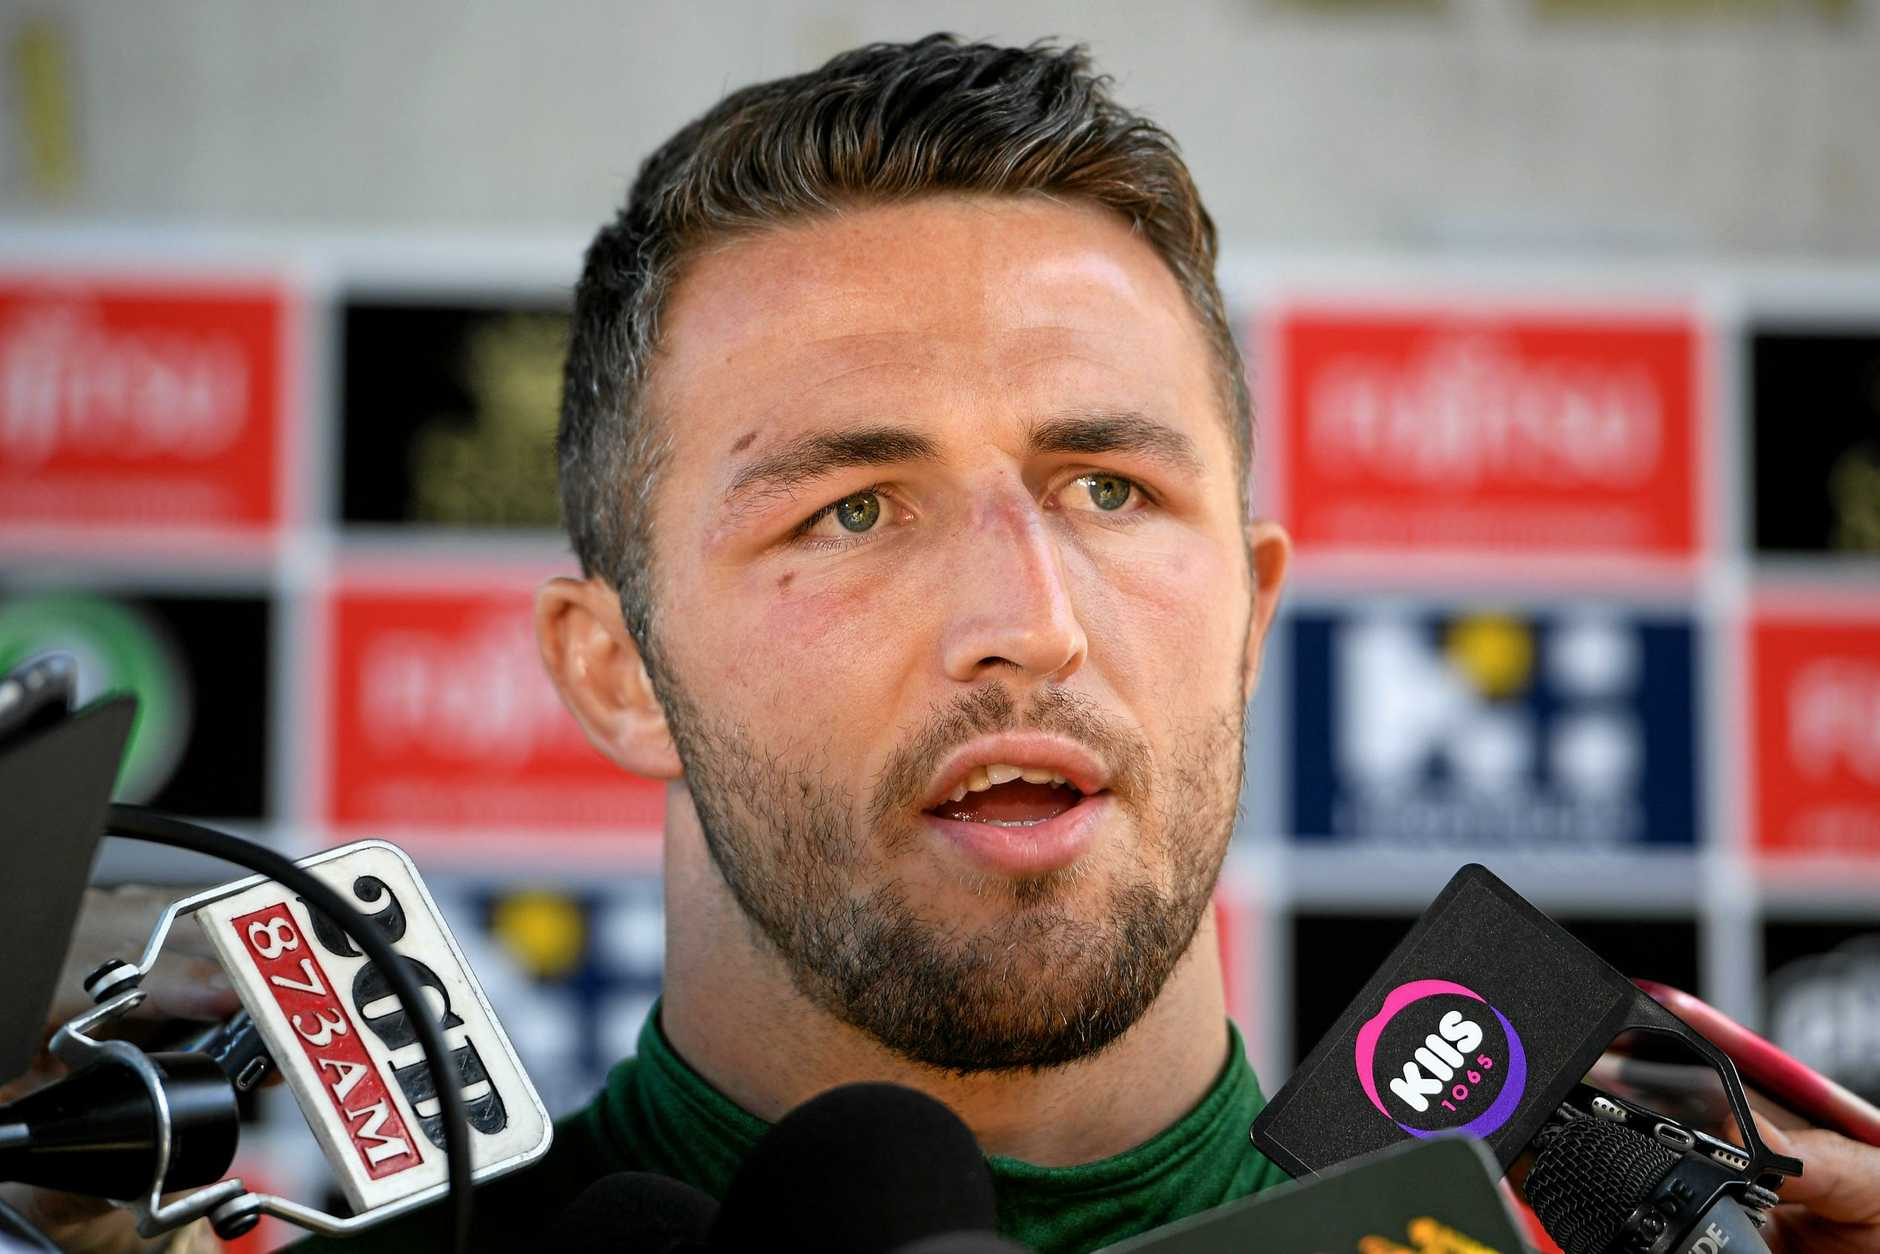 South Sydney Rabbitohs player Sam Burgess addresses media at Redfern Oval in Sydney, Tuesday, September 18, 2018. (AAP Image/Dan Himbrechts) NO ARCHIVING